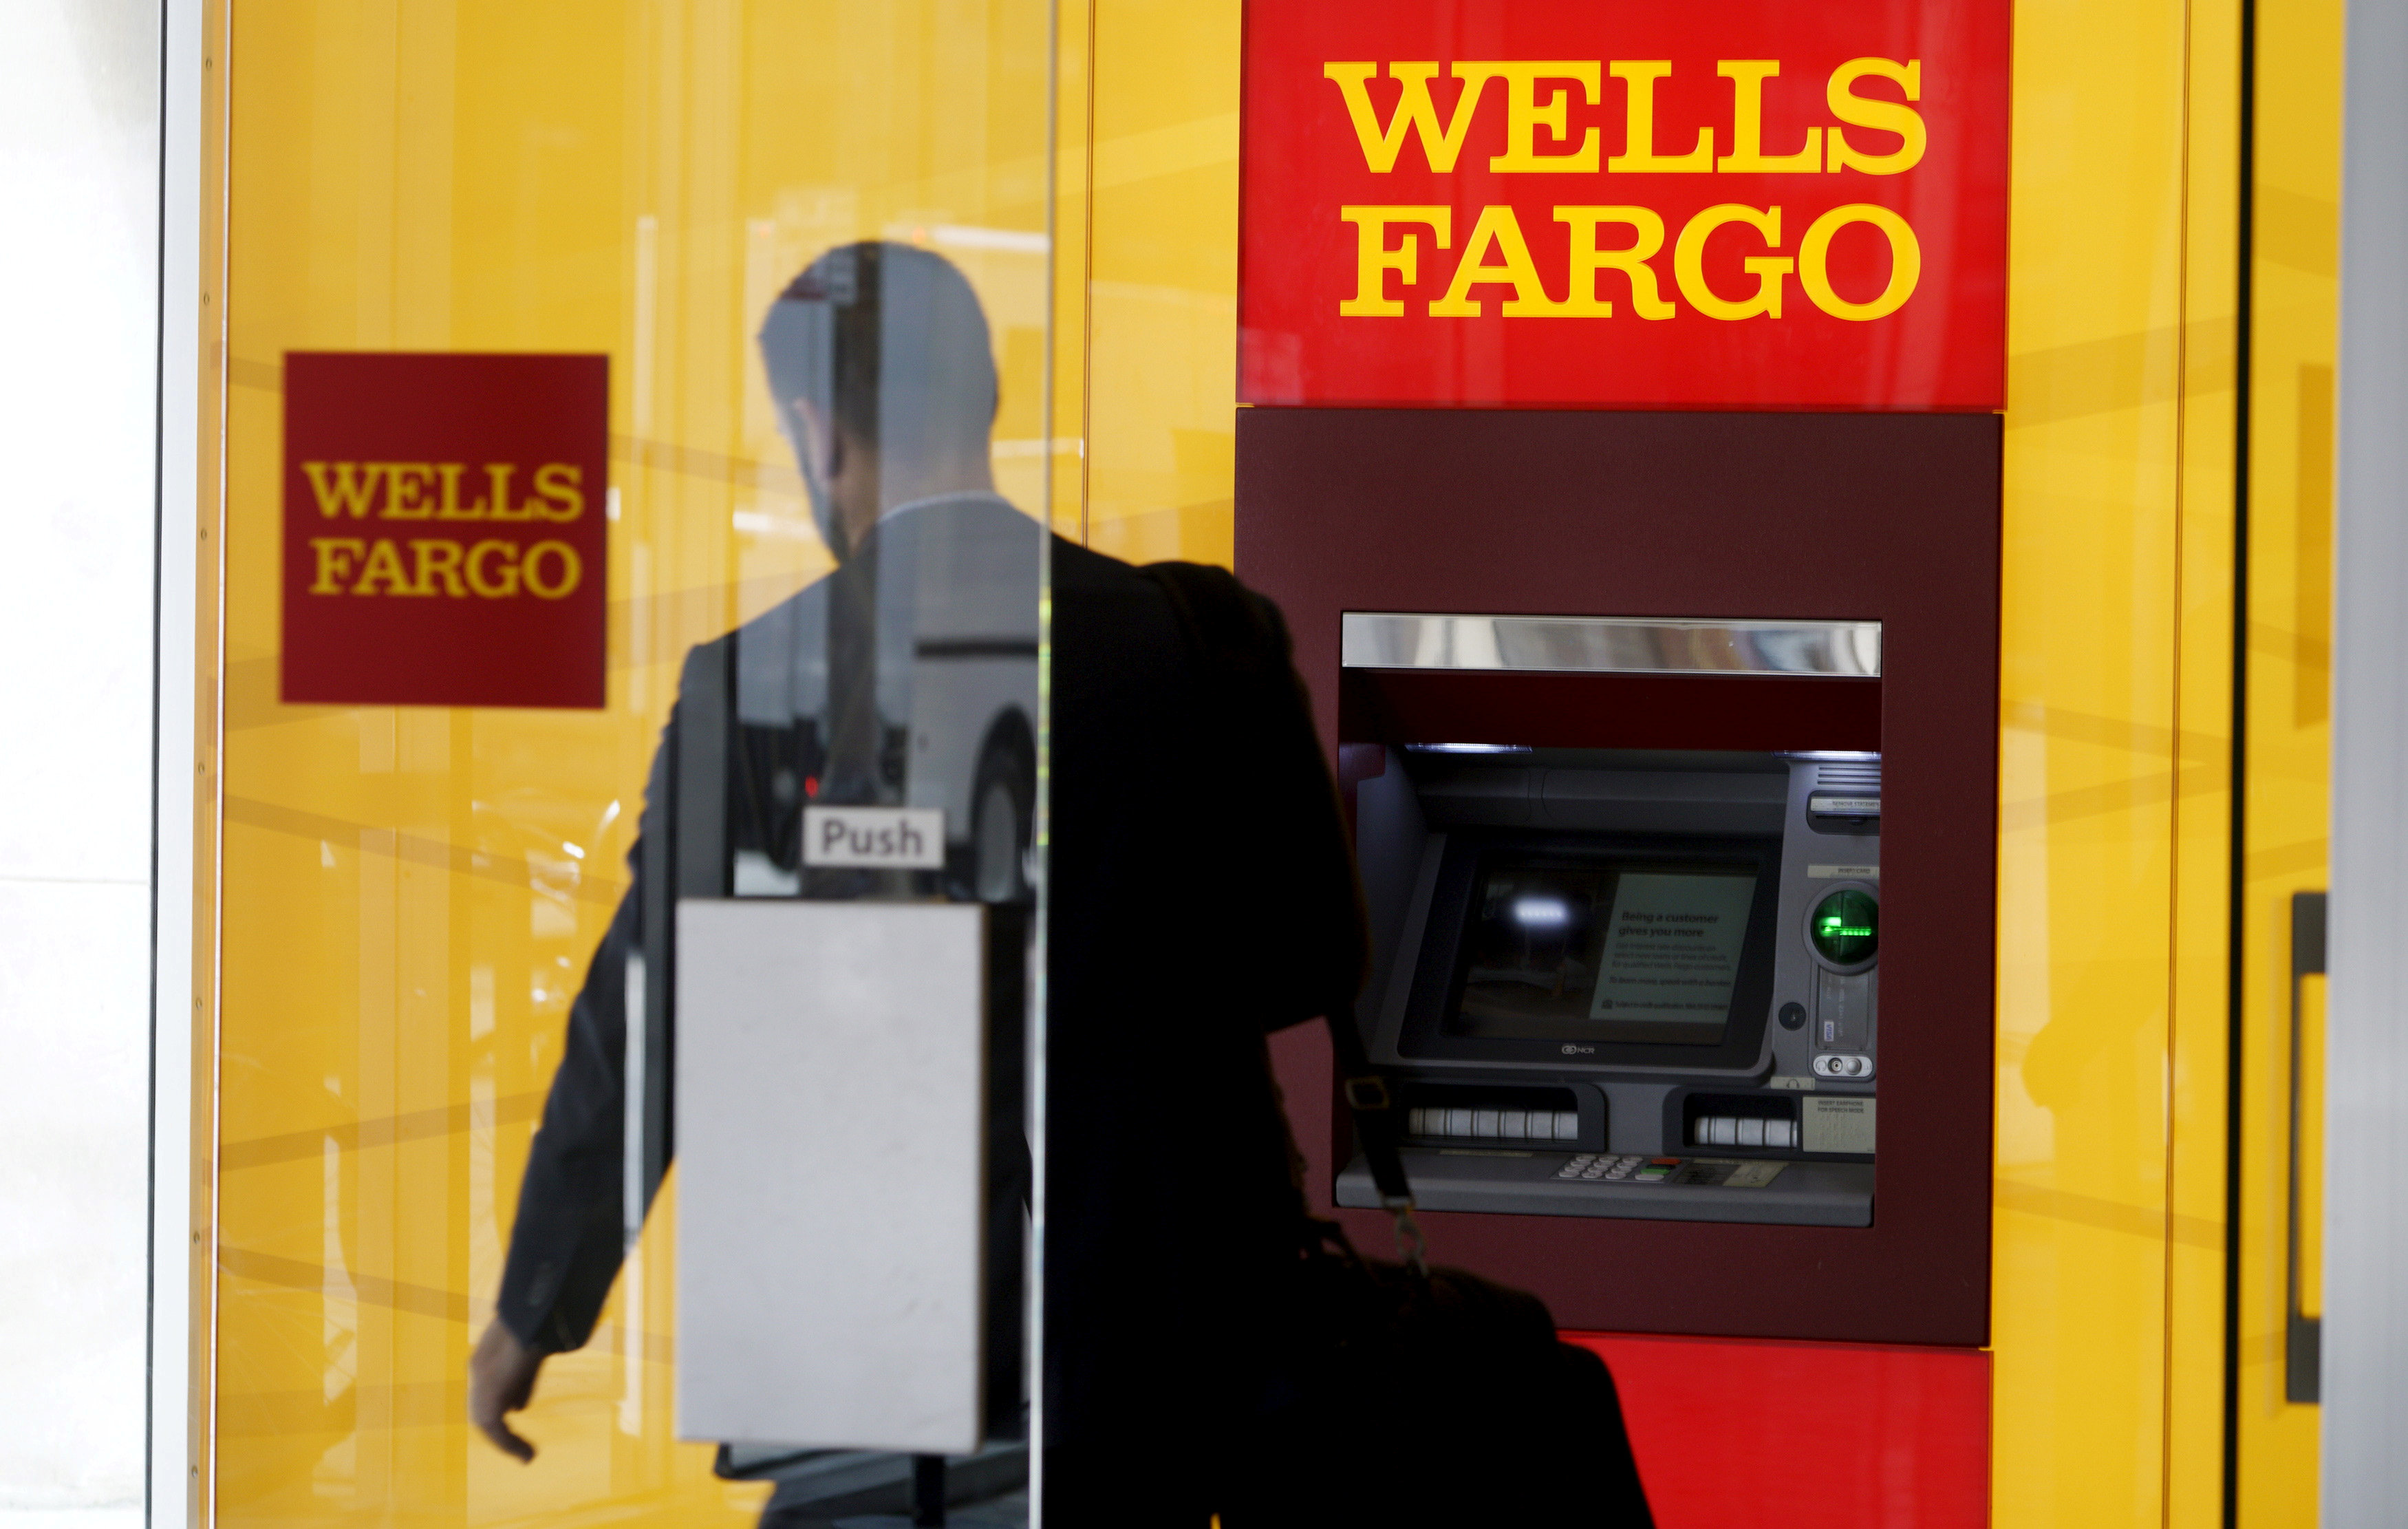 A man walks by a bank machine at the Wells Fargo & Co. bank in downtown Denver, Colorado on April 13, 2016. (REUTERS/Rick Wilking)